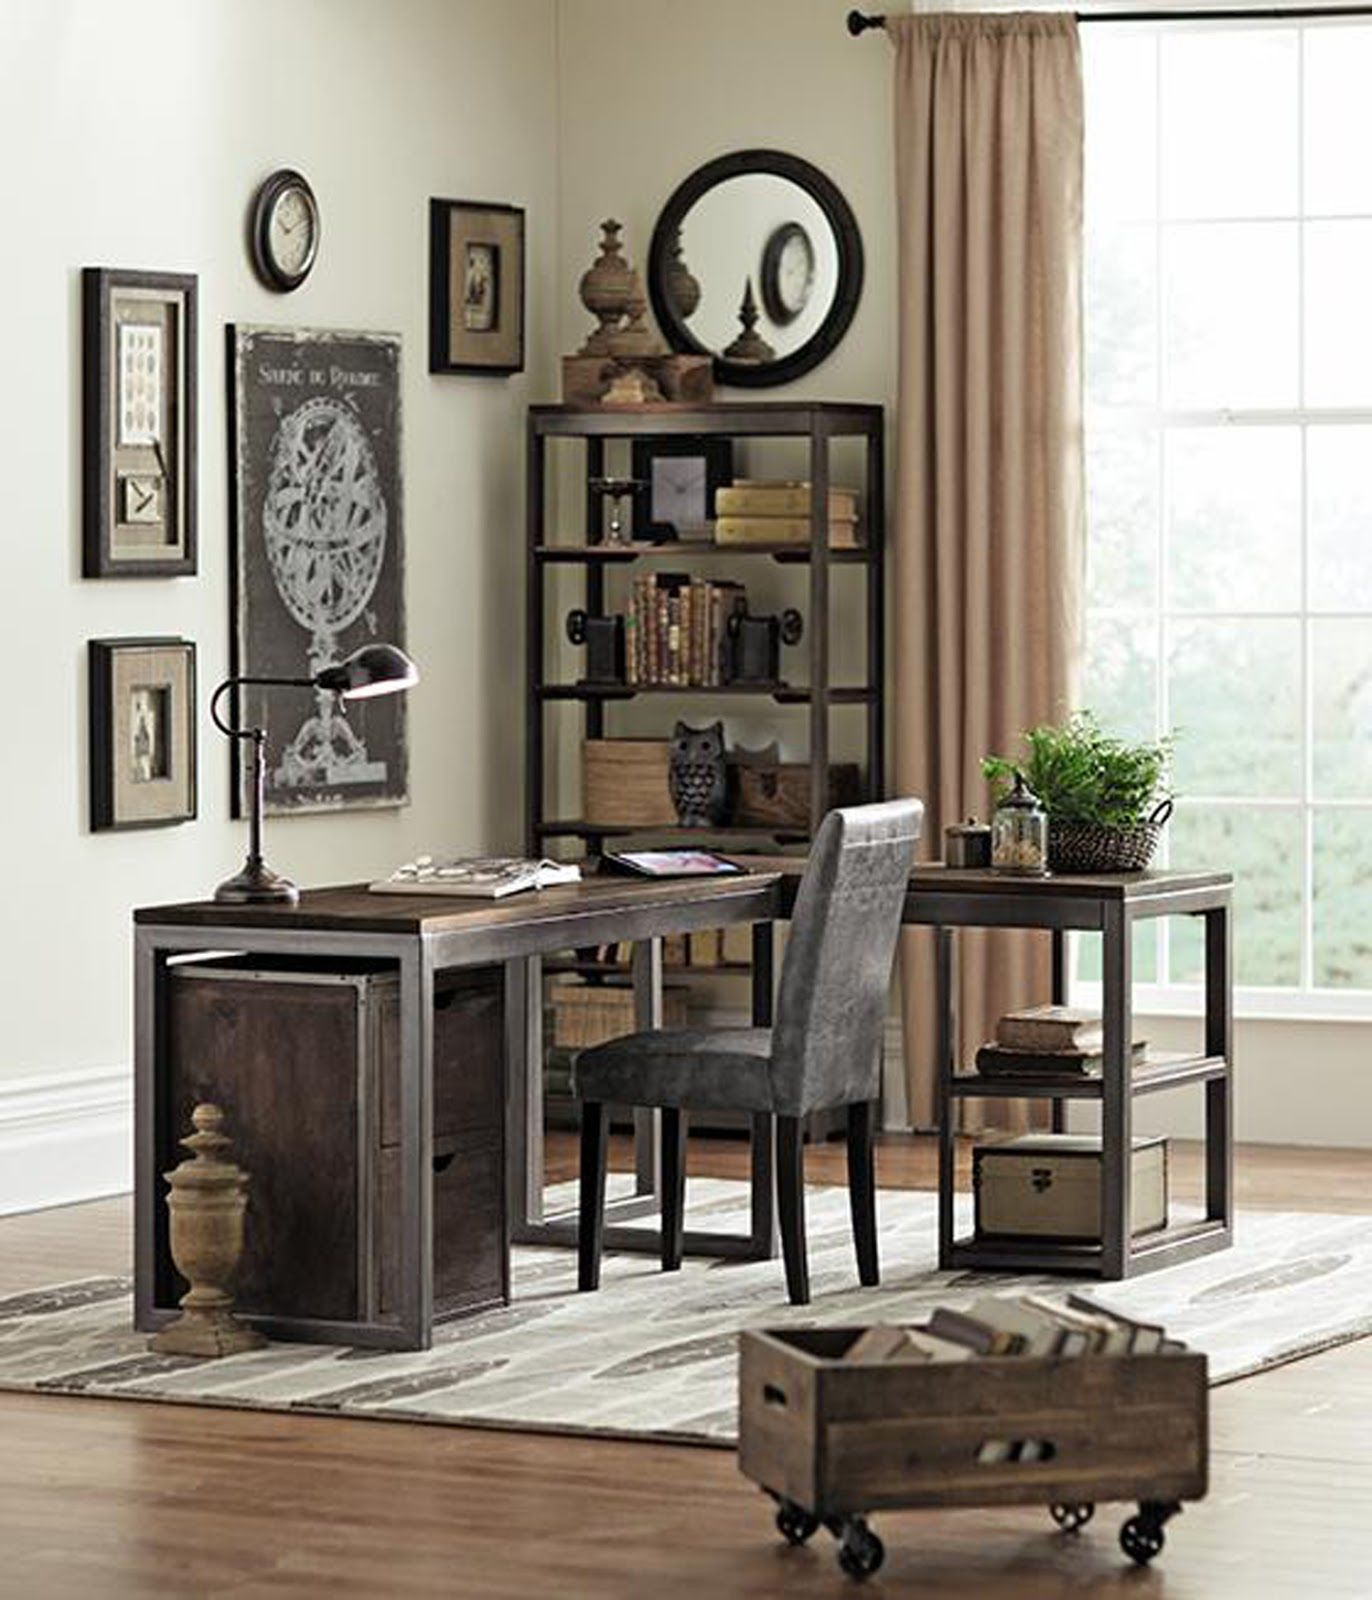 furniture u0026 accessories simple and classic design of industrial home decors for wooden materials of living room industrial home decors in classic style